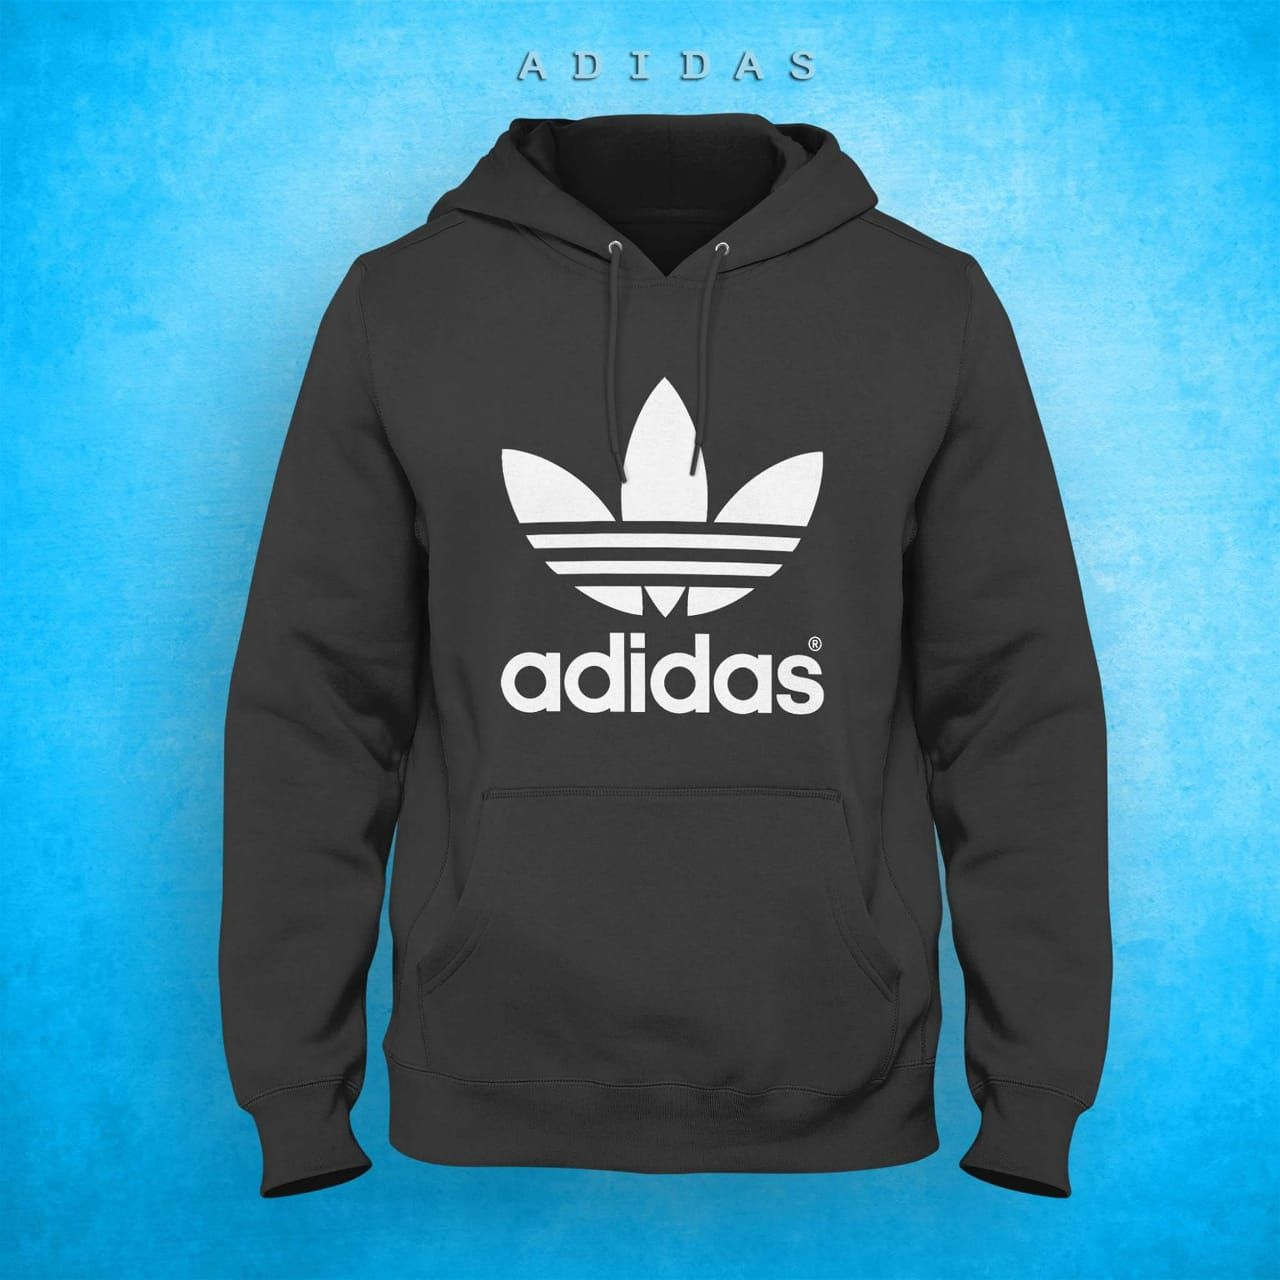 Buy Adidas Hoodieforgirls In Pakistan At Junibapk